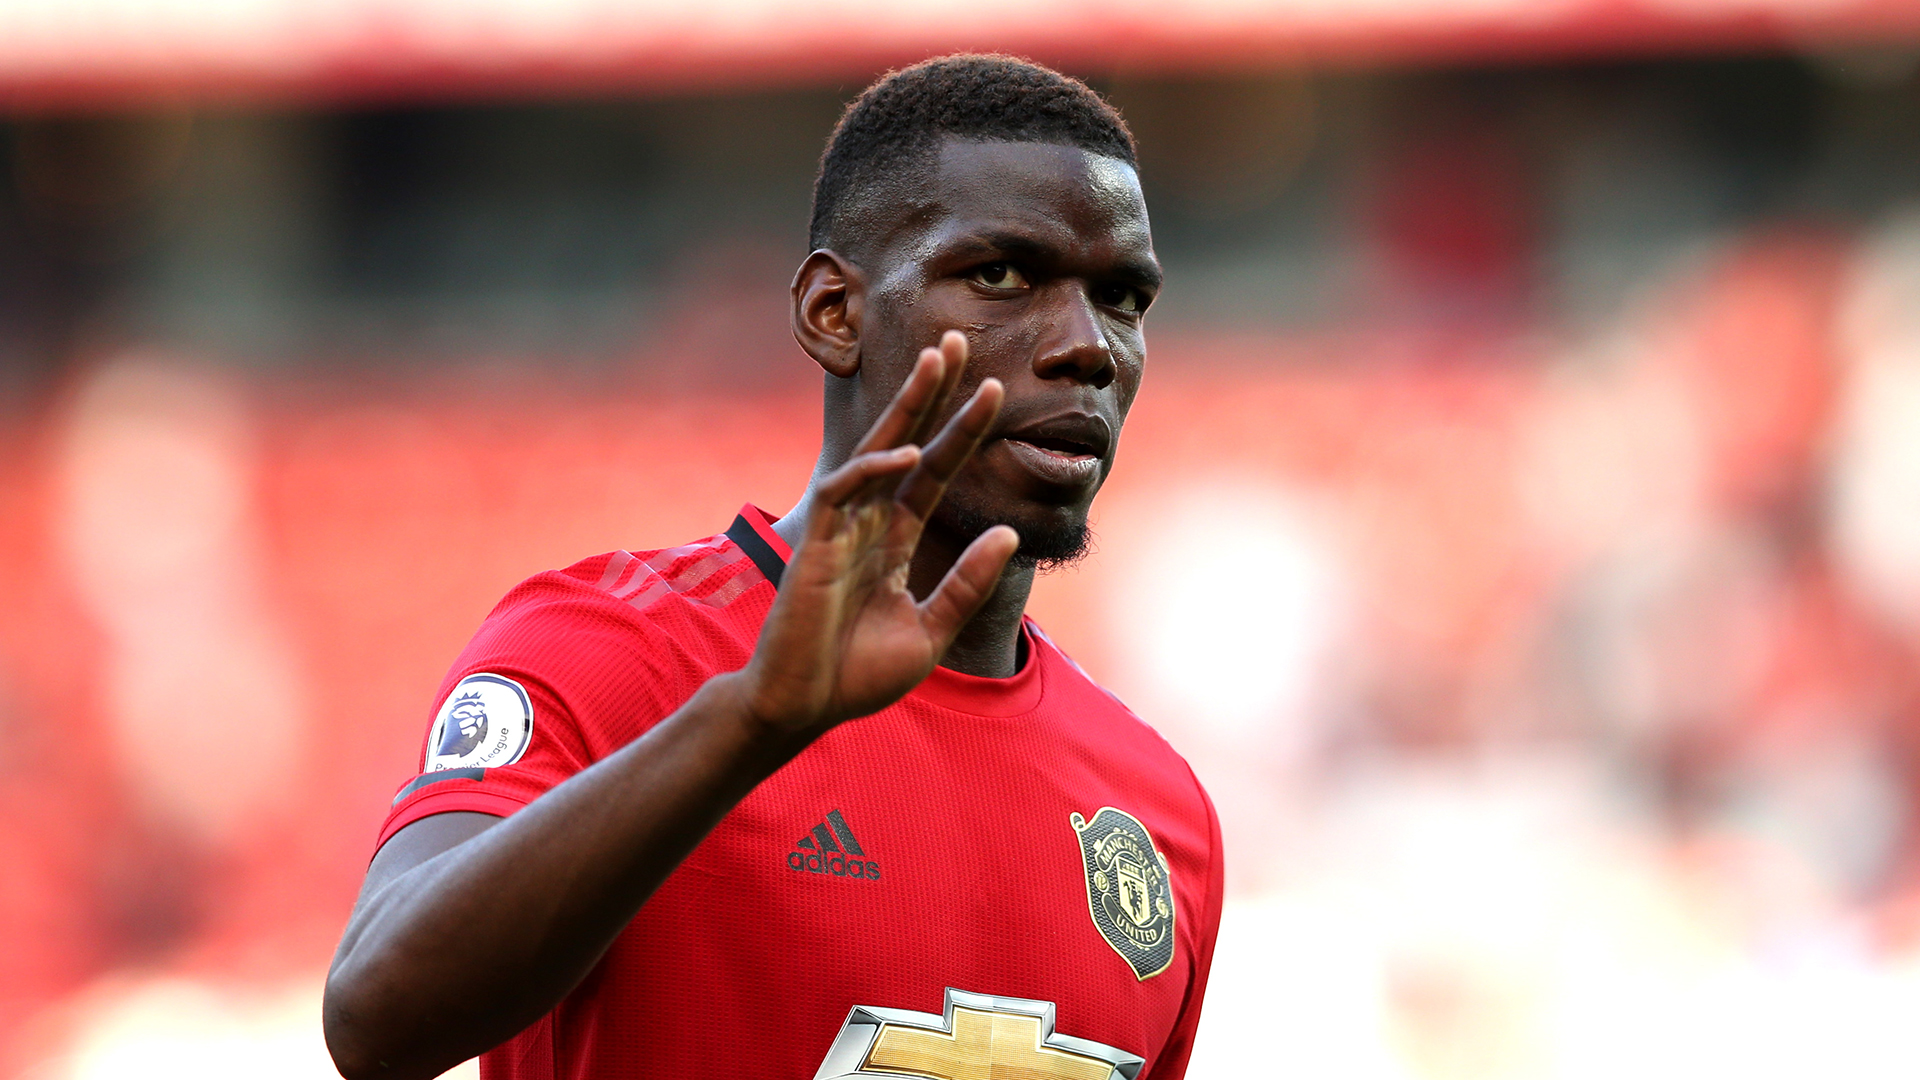 Mercato - Paul Pogba (Manchester United) n'oublie pas non plus le Real Madrid !